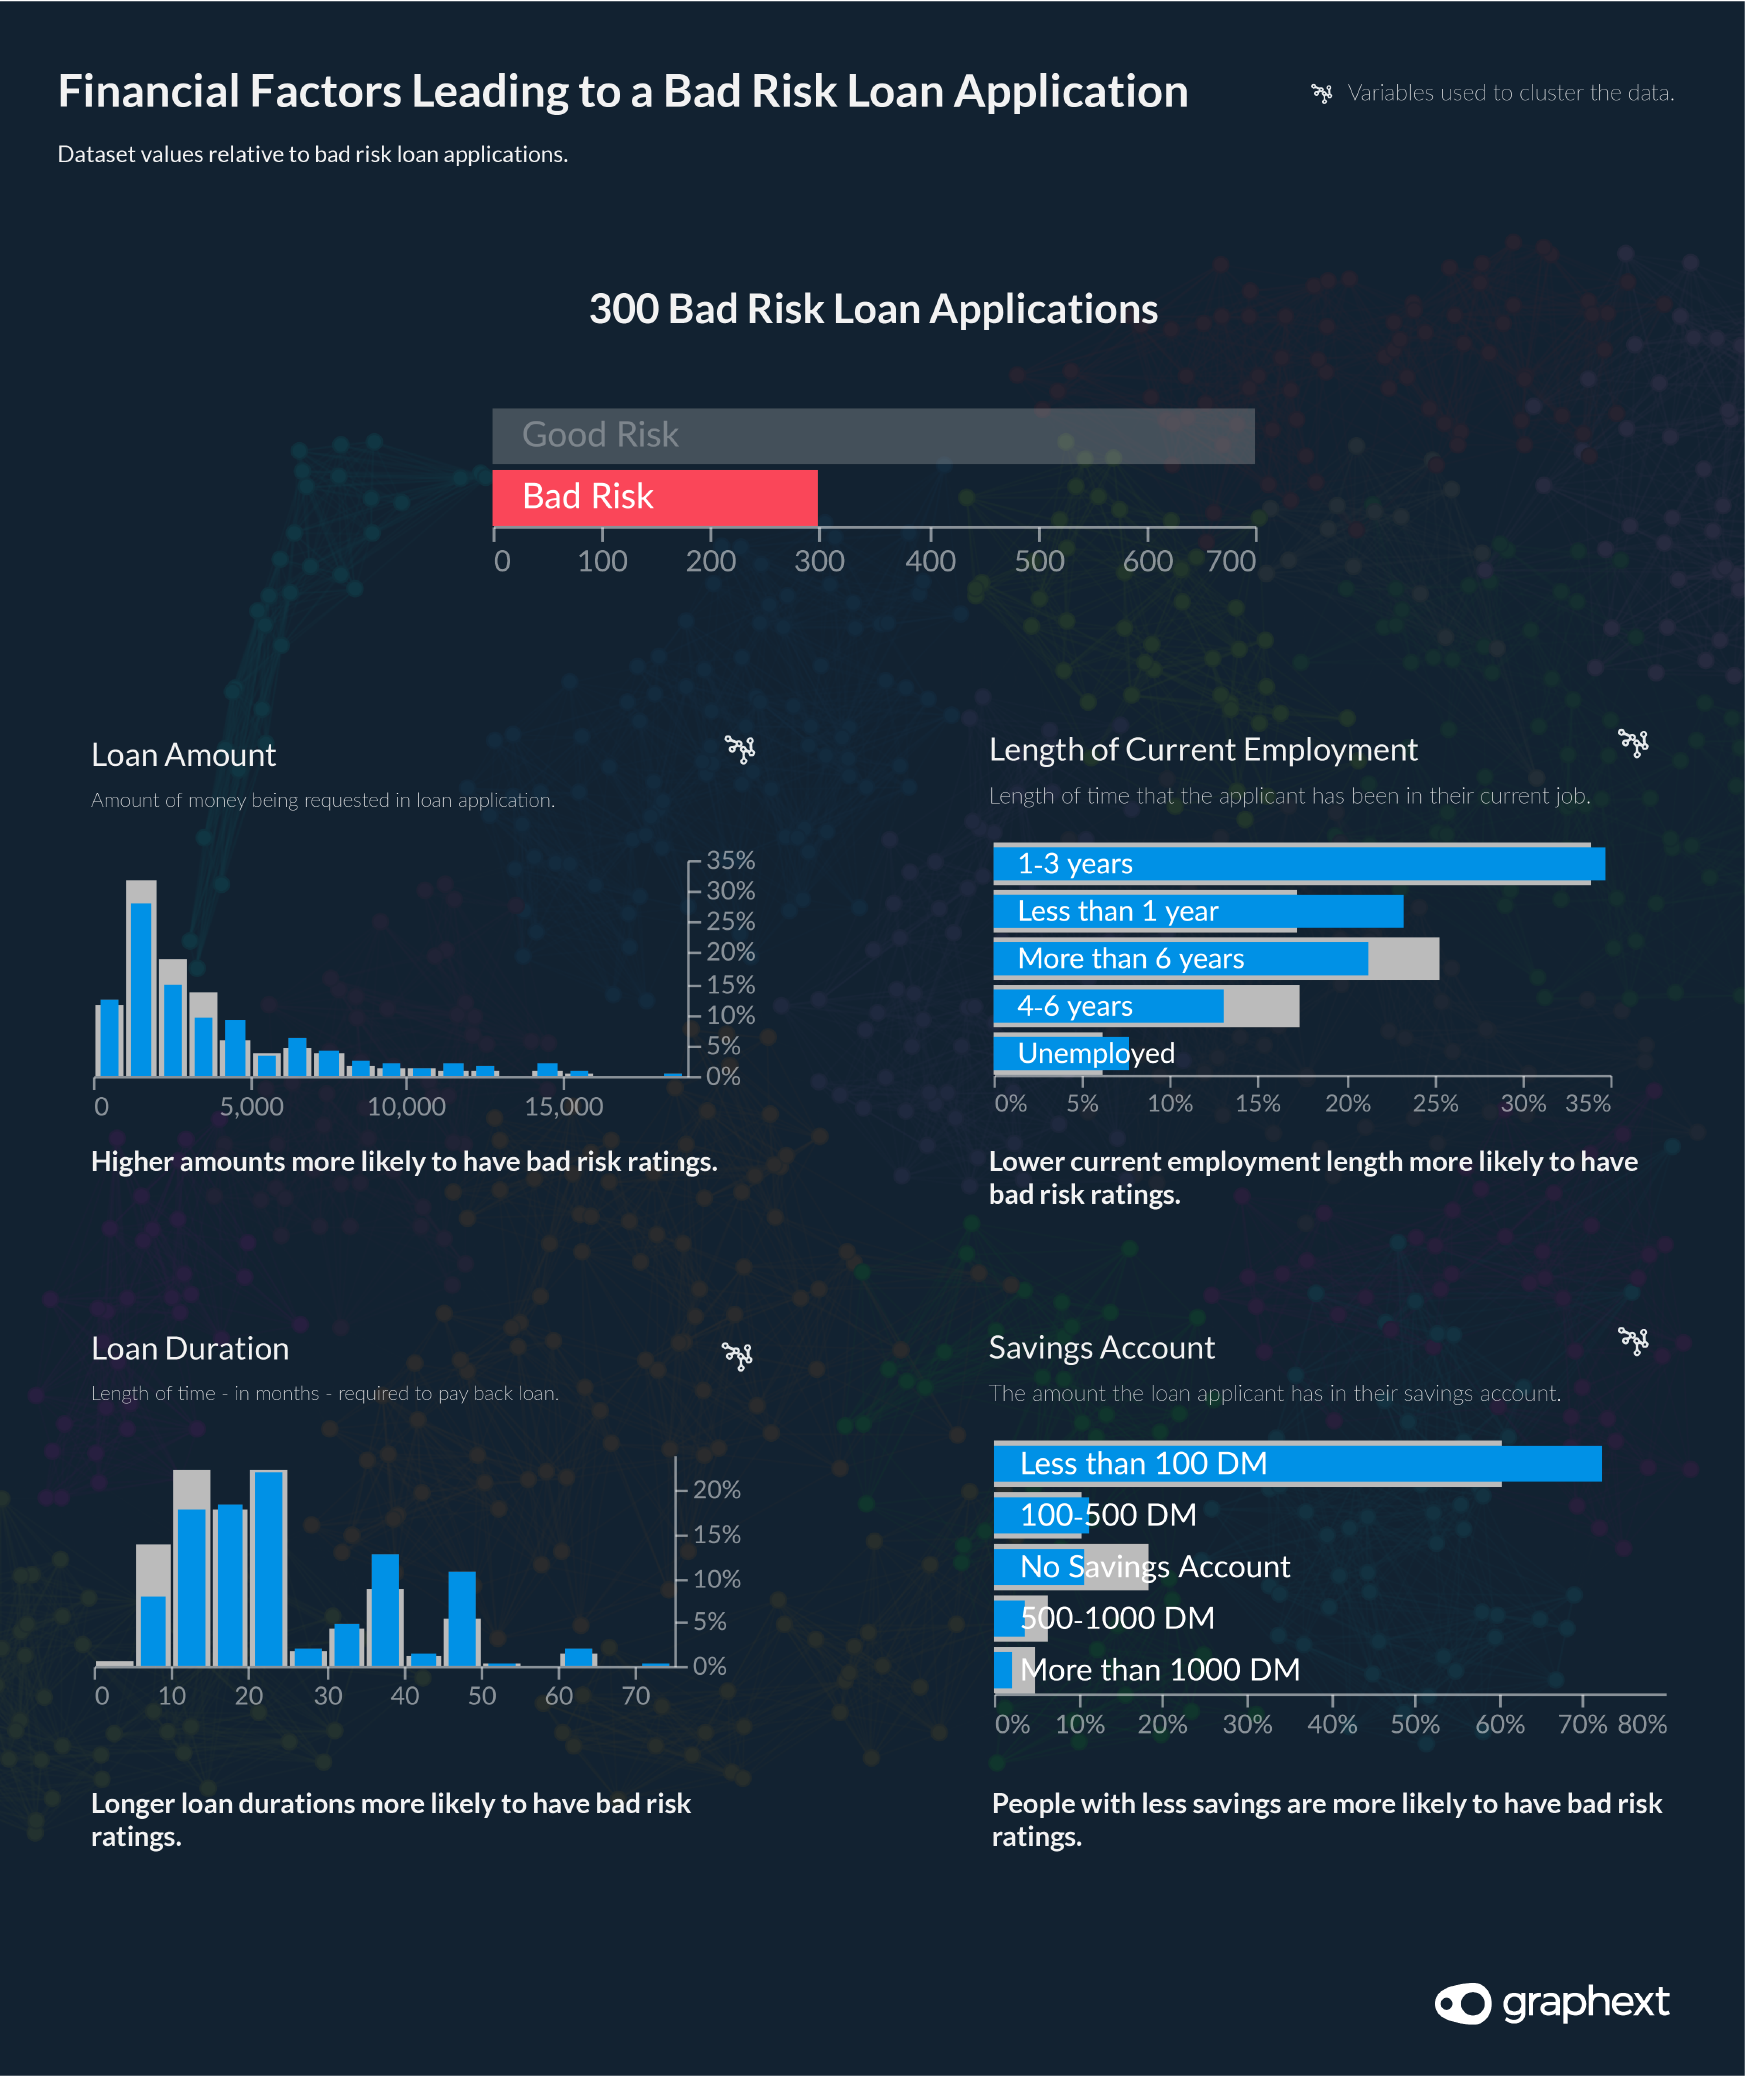 Simple charts showing how financial factors like the loan amount, the length of the applicant's current employment and the duration of a loan influences the bad risk classification of the loan.